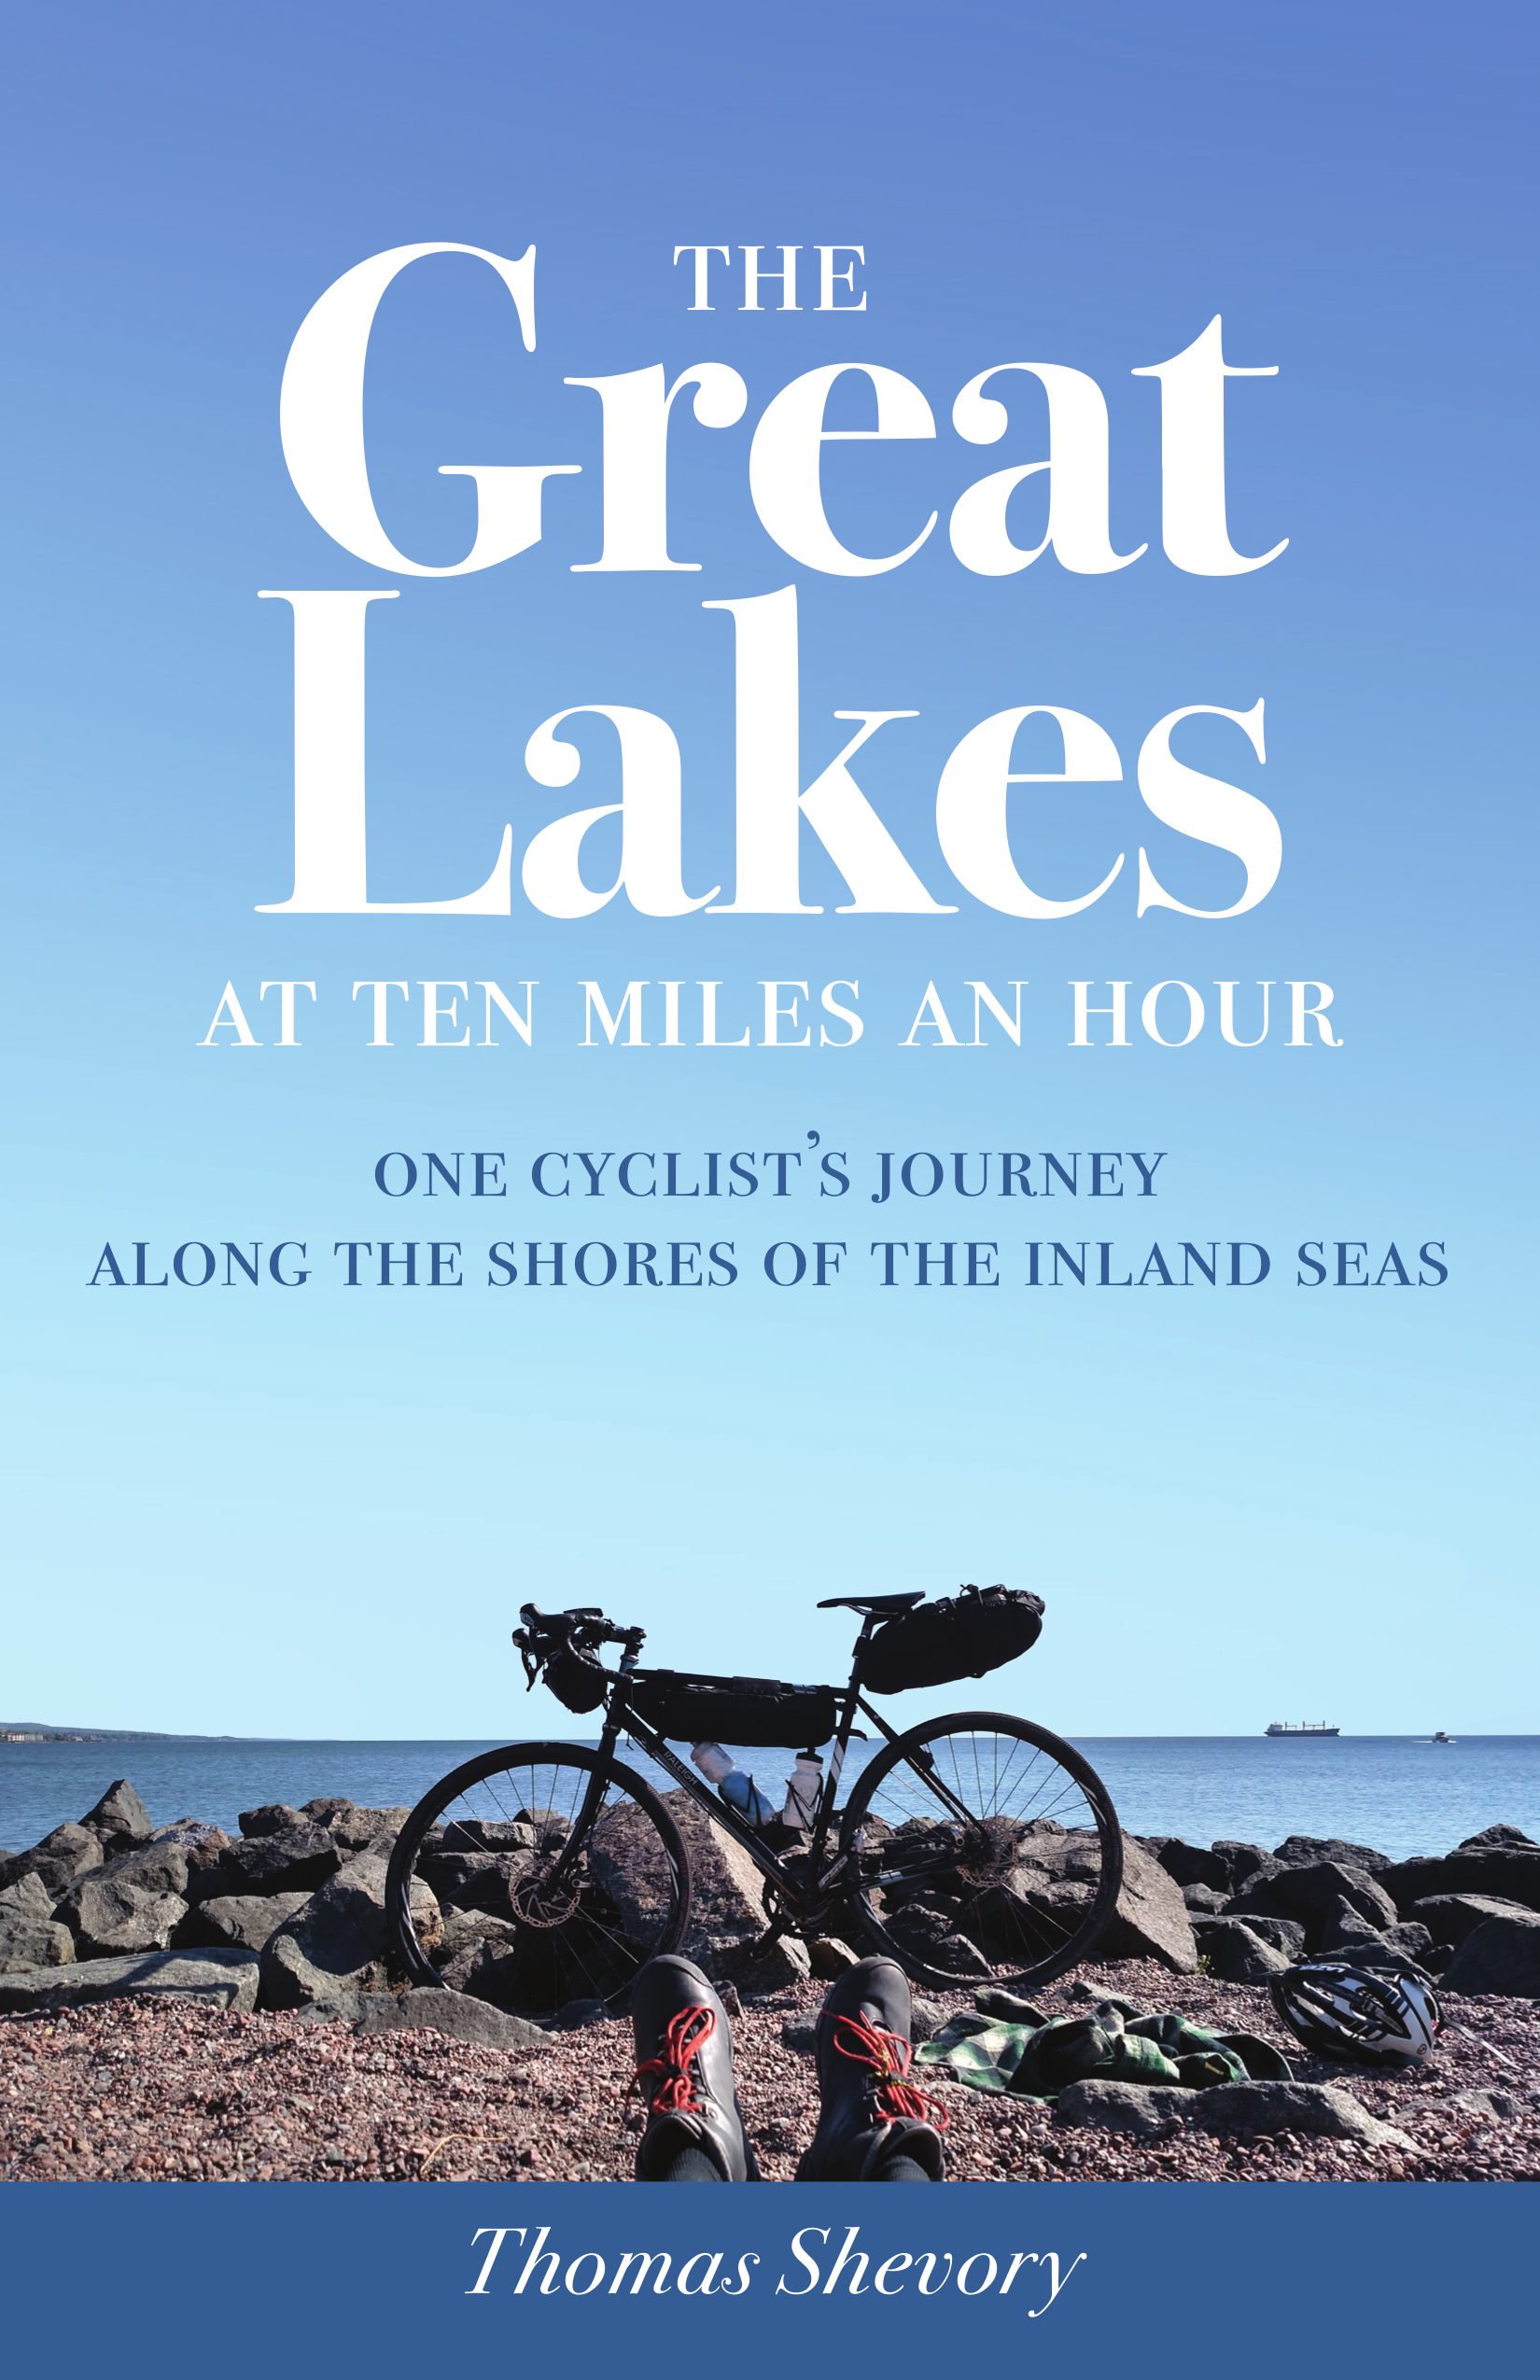 Great Lakes at Ten Miles an Hour